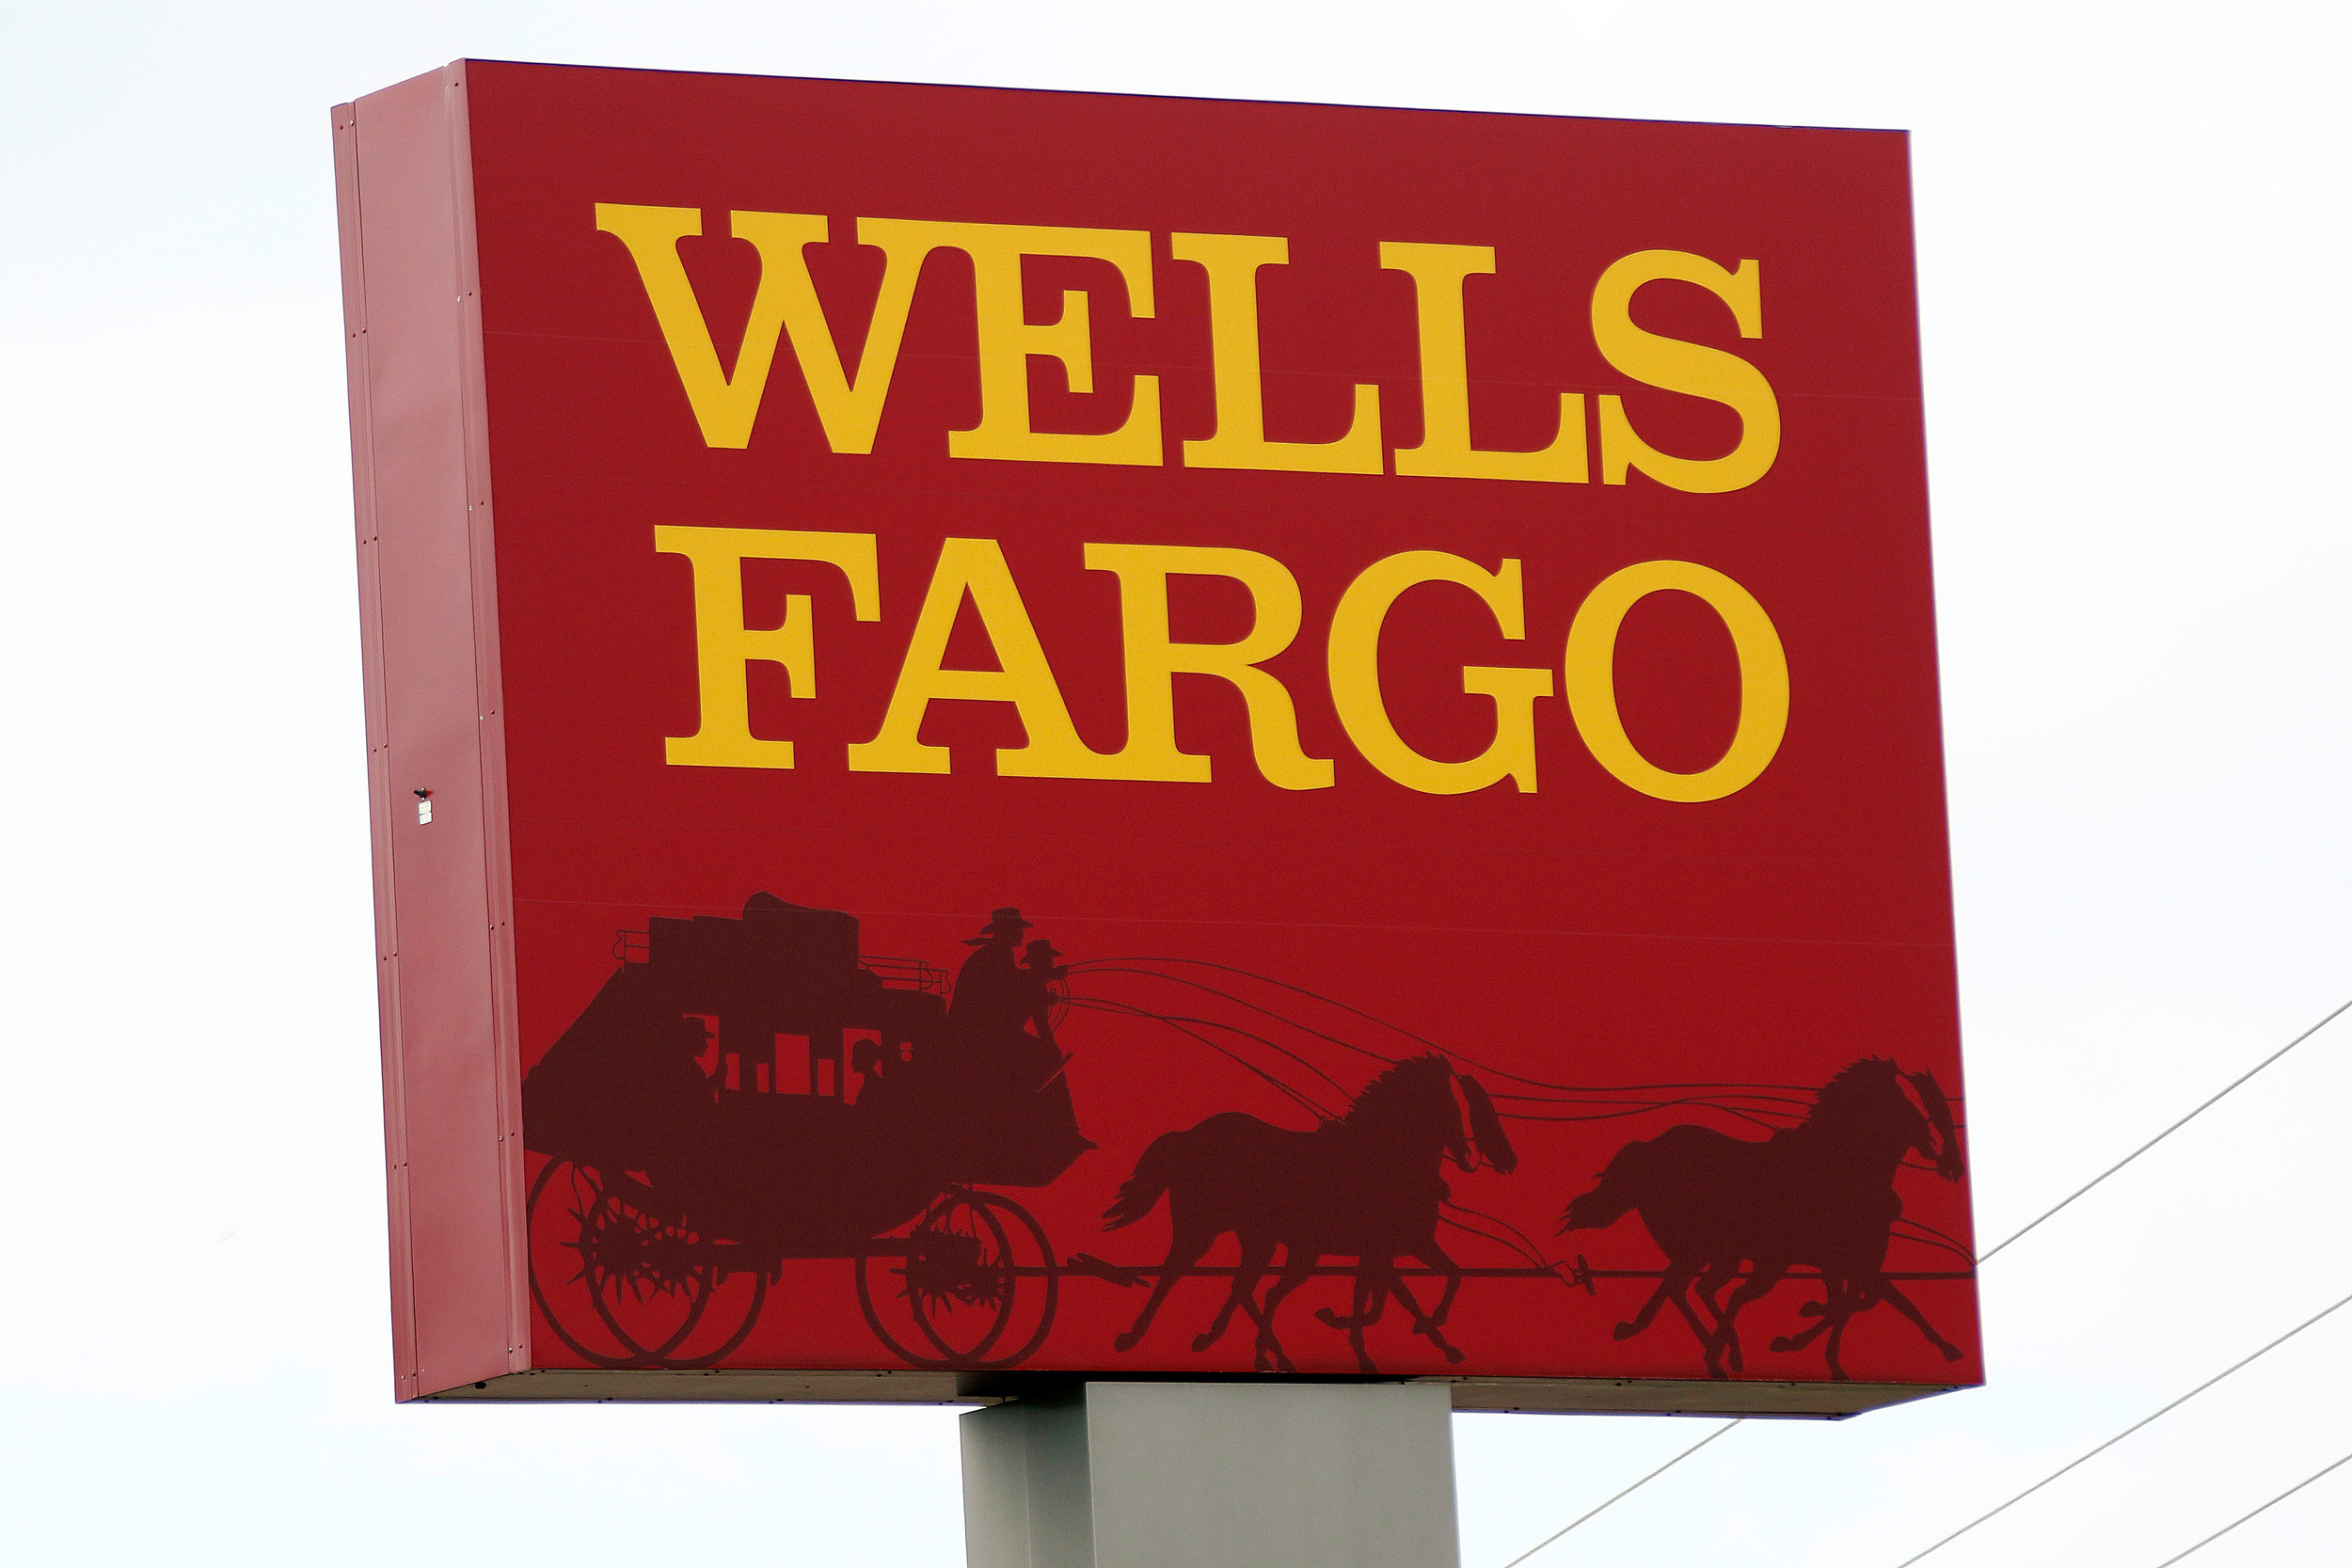 Wells Fargo Uncovers 1400000 More Fake Accounts In Growing Sales Scandal